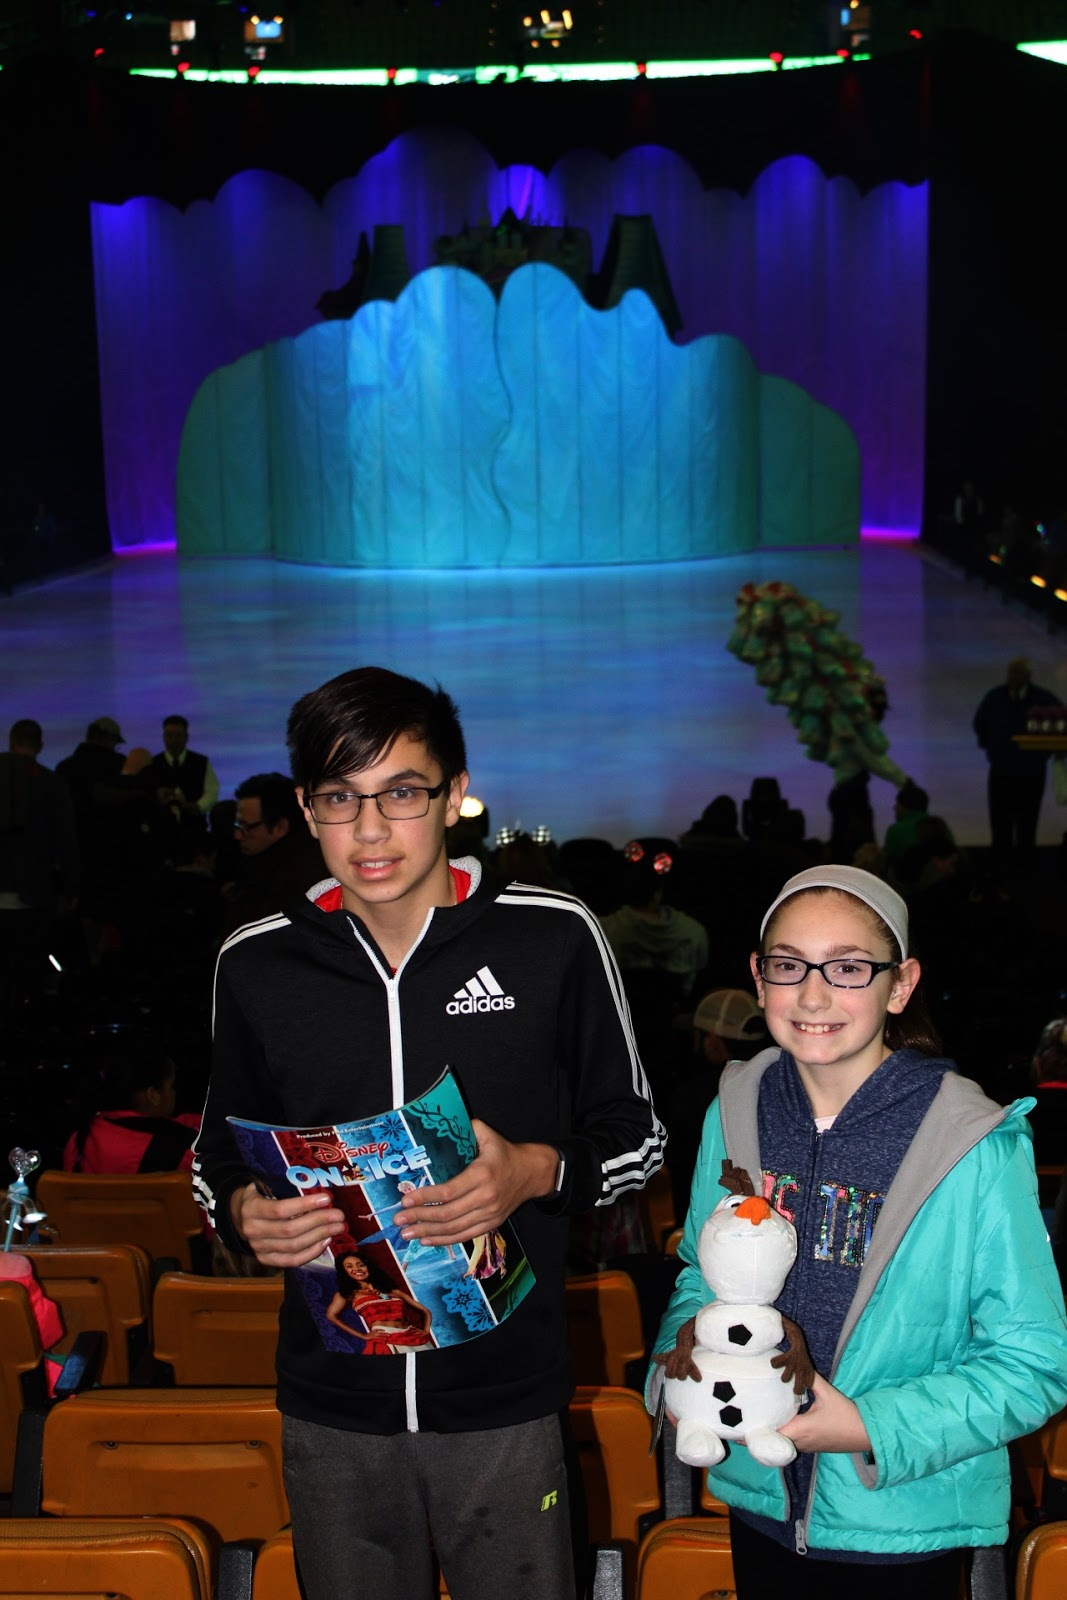 I Have Now Continued This Tradition With My Kids. We Went To See Disney On  Ice Dare To Dream At The TD Garden The Other Night And Loved It!